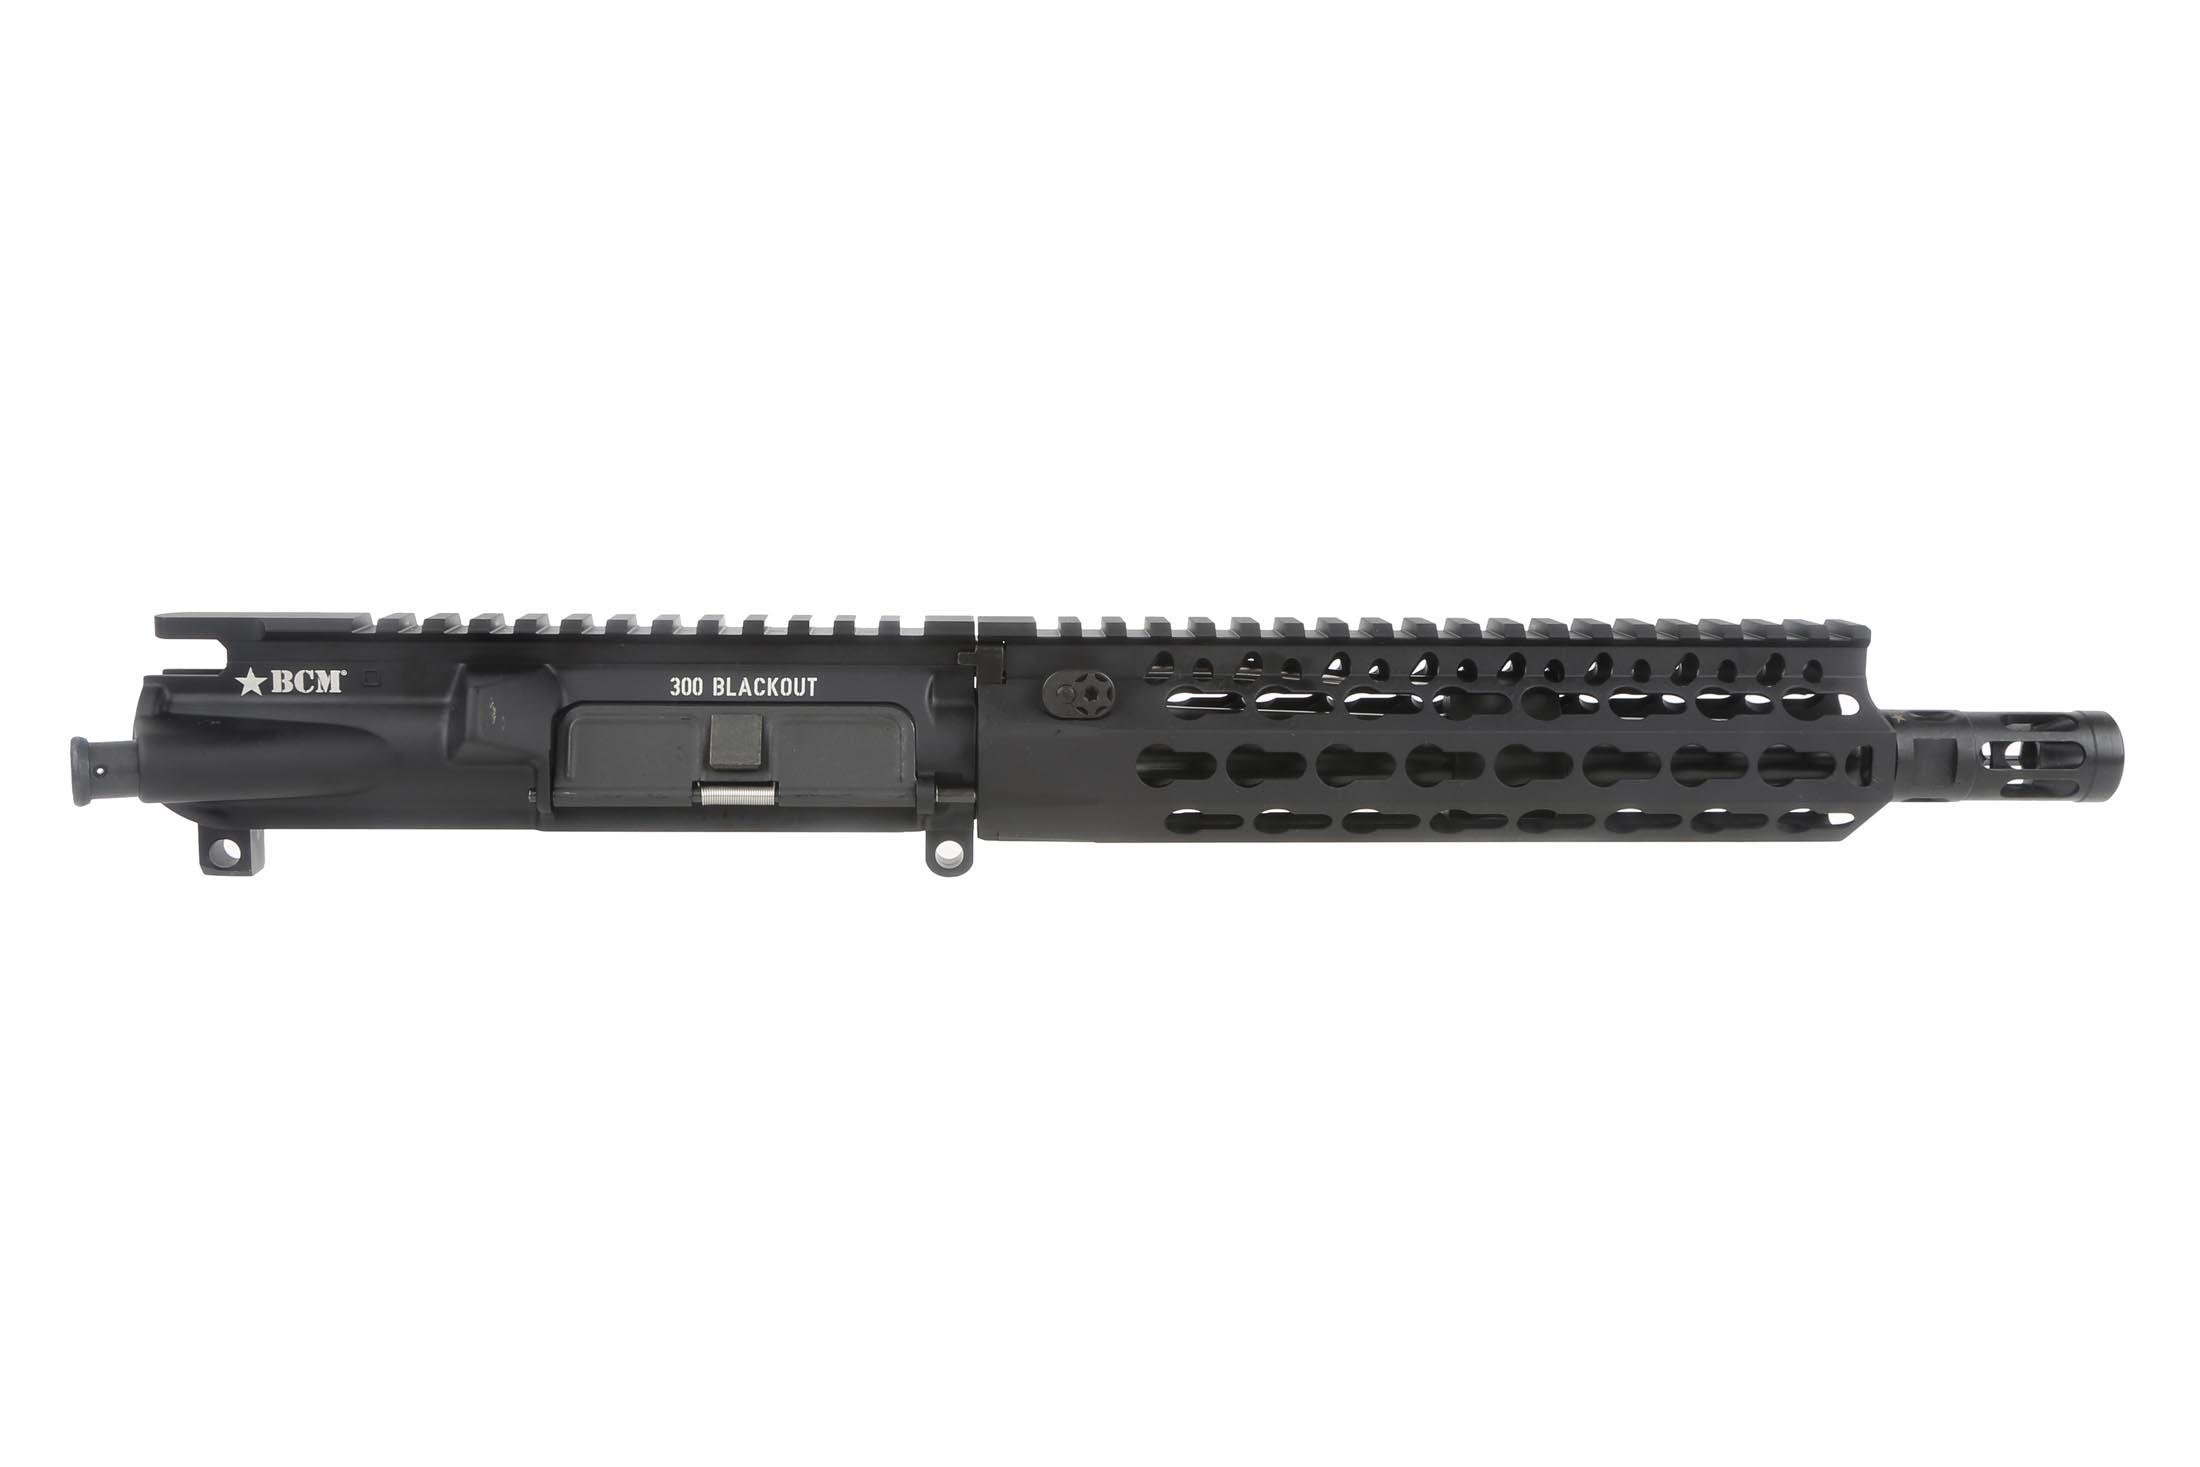 The BCM 300 BLK AR15 barreled upper receiver features the KMR KeyMod Alpha Handguard